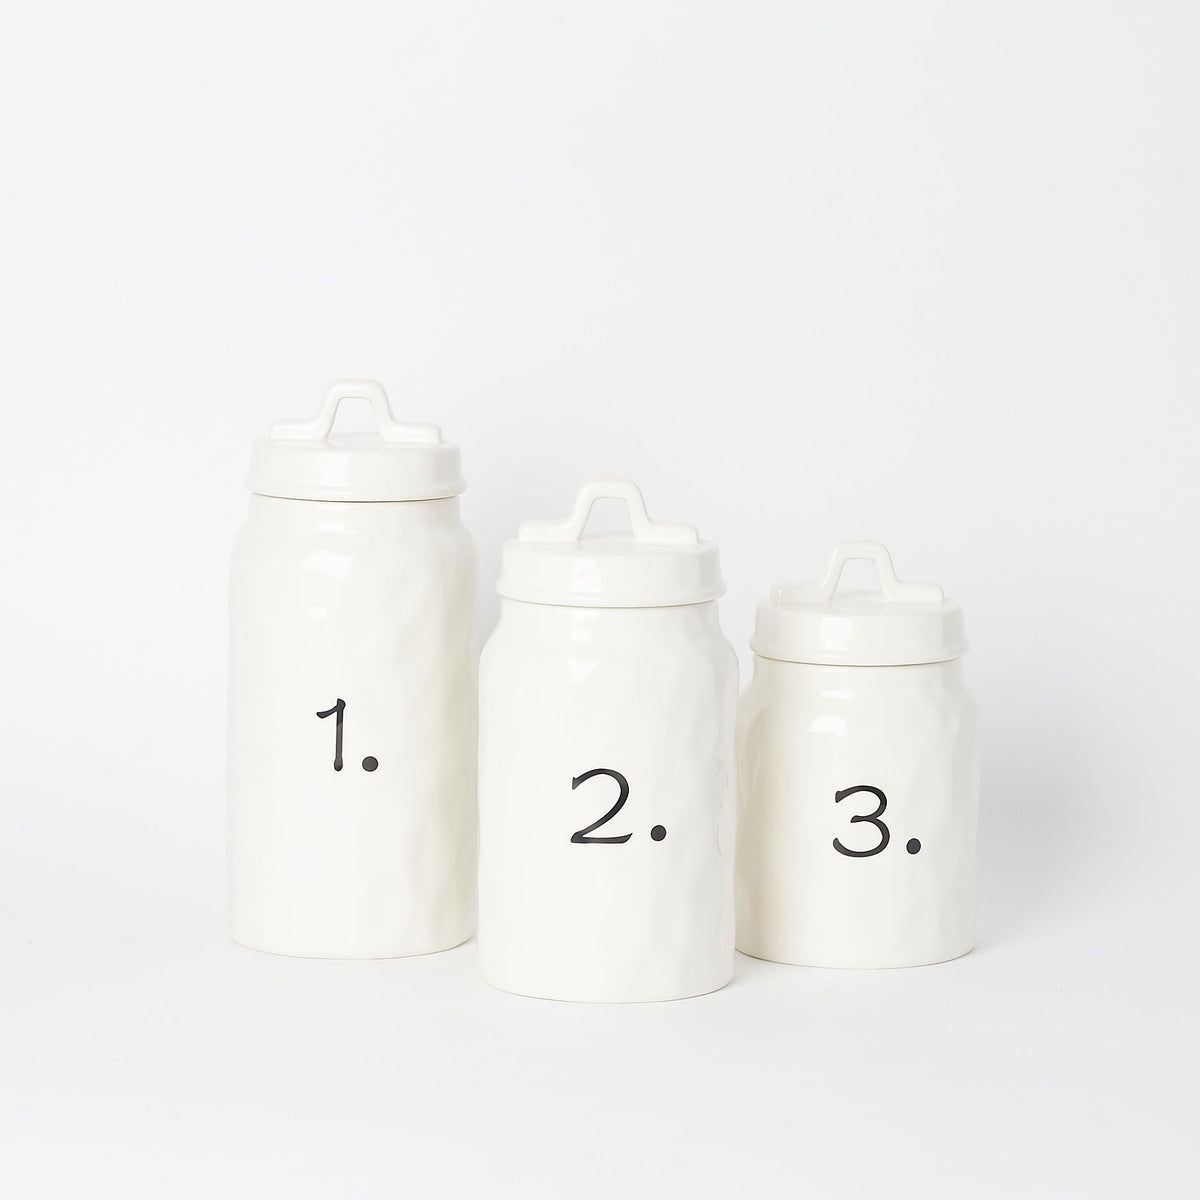 Ceramic Canisters (Set of 3)